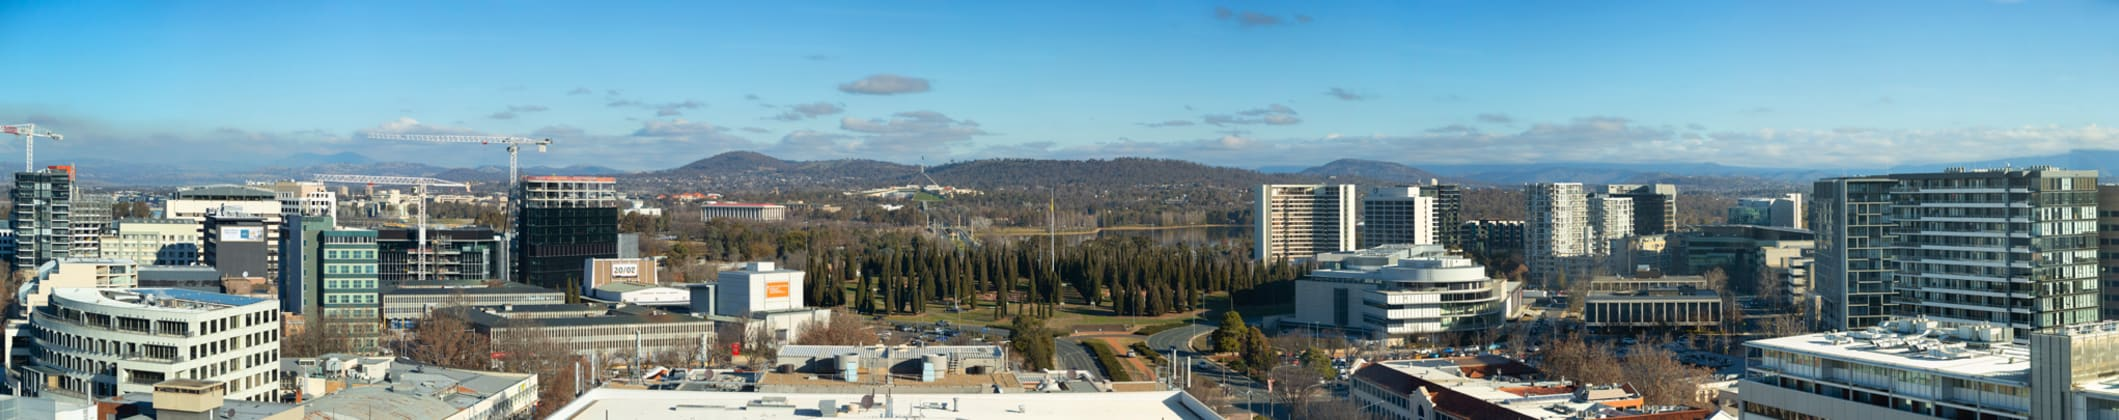 68 Northbourne Ave Canberra ACT 2600 - Image 5